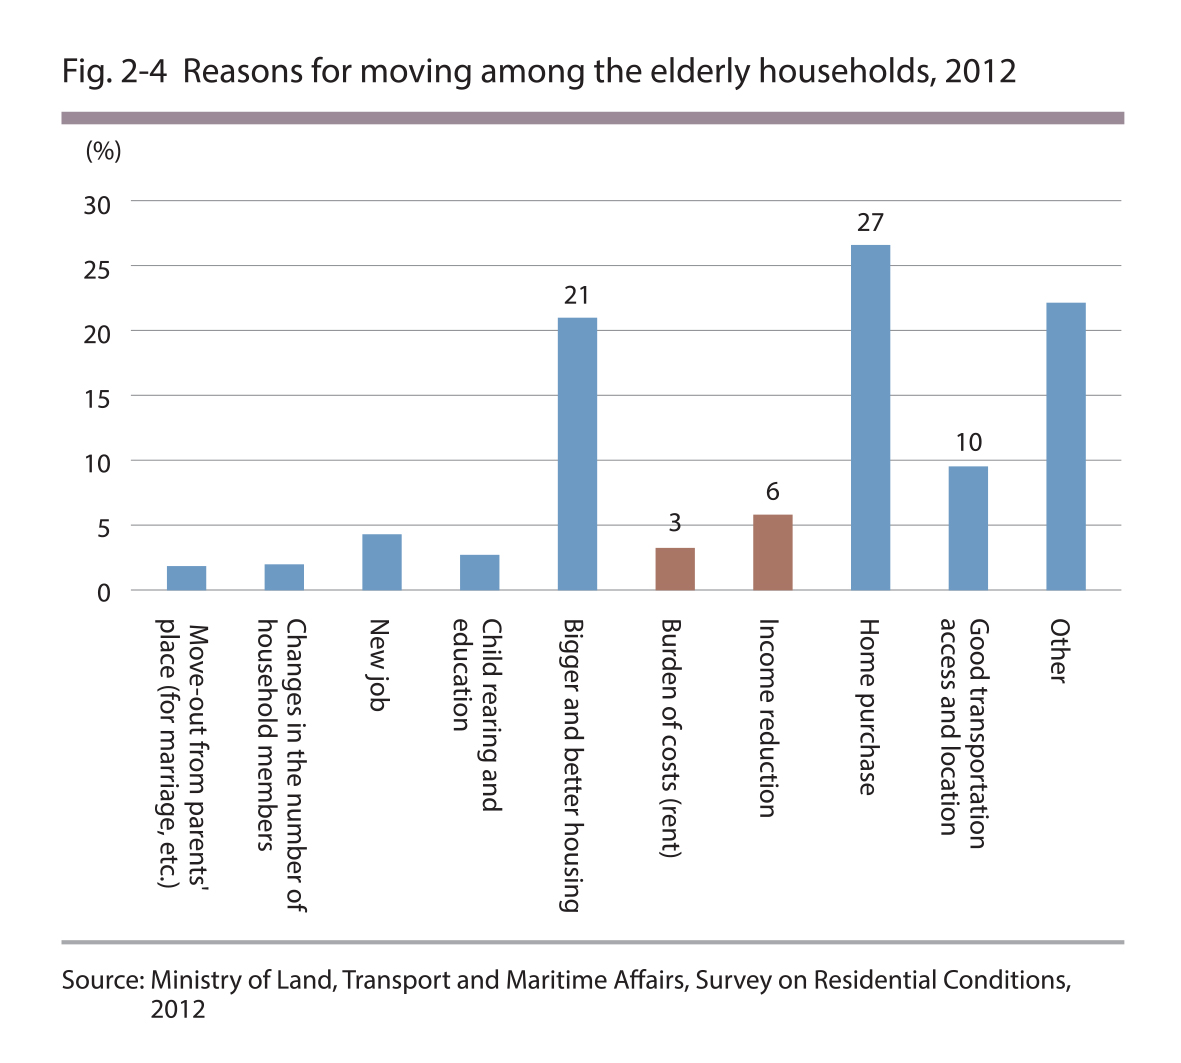 Reasons for moving among elderly households, 2012